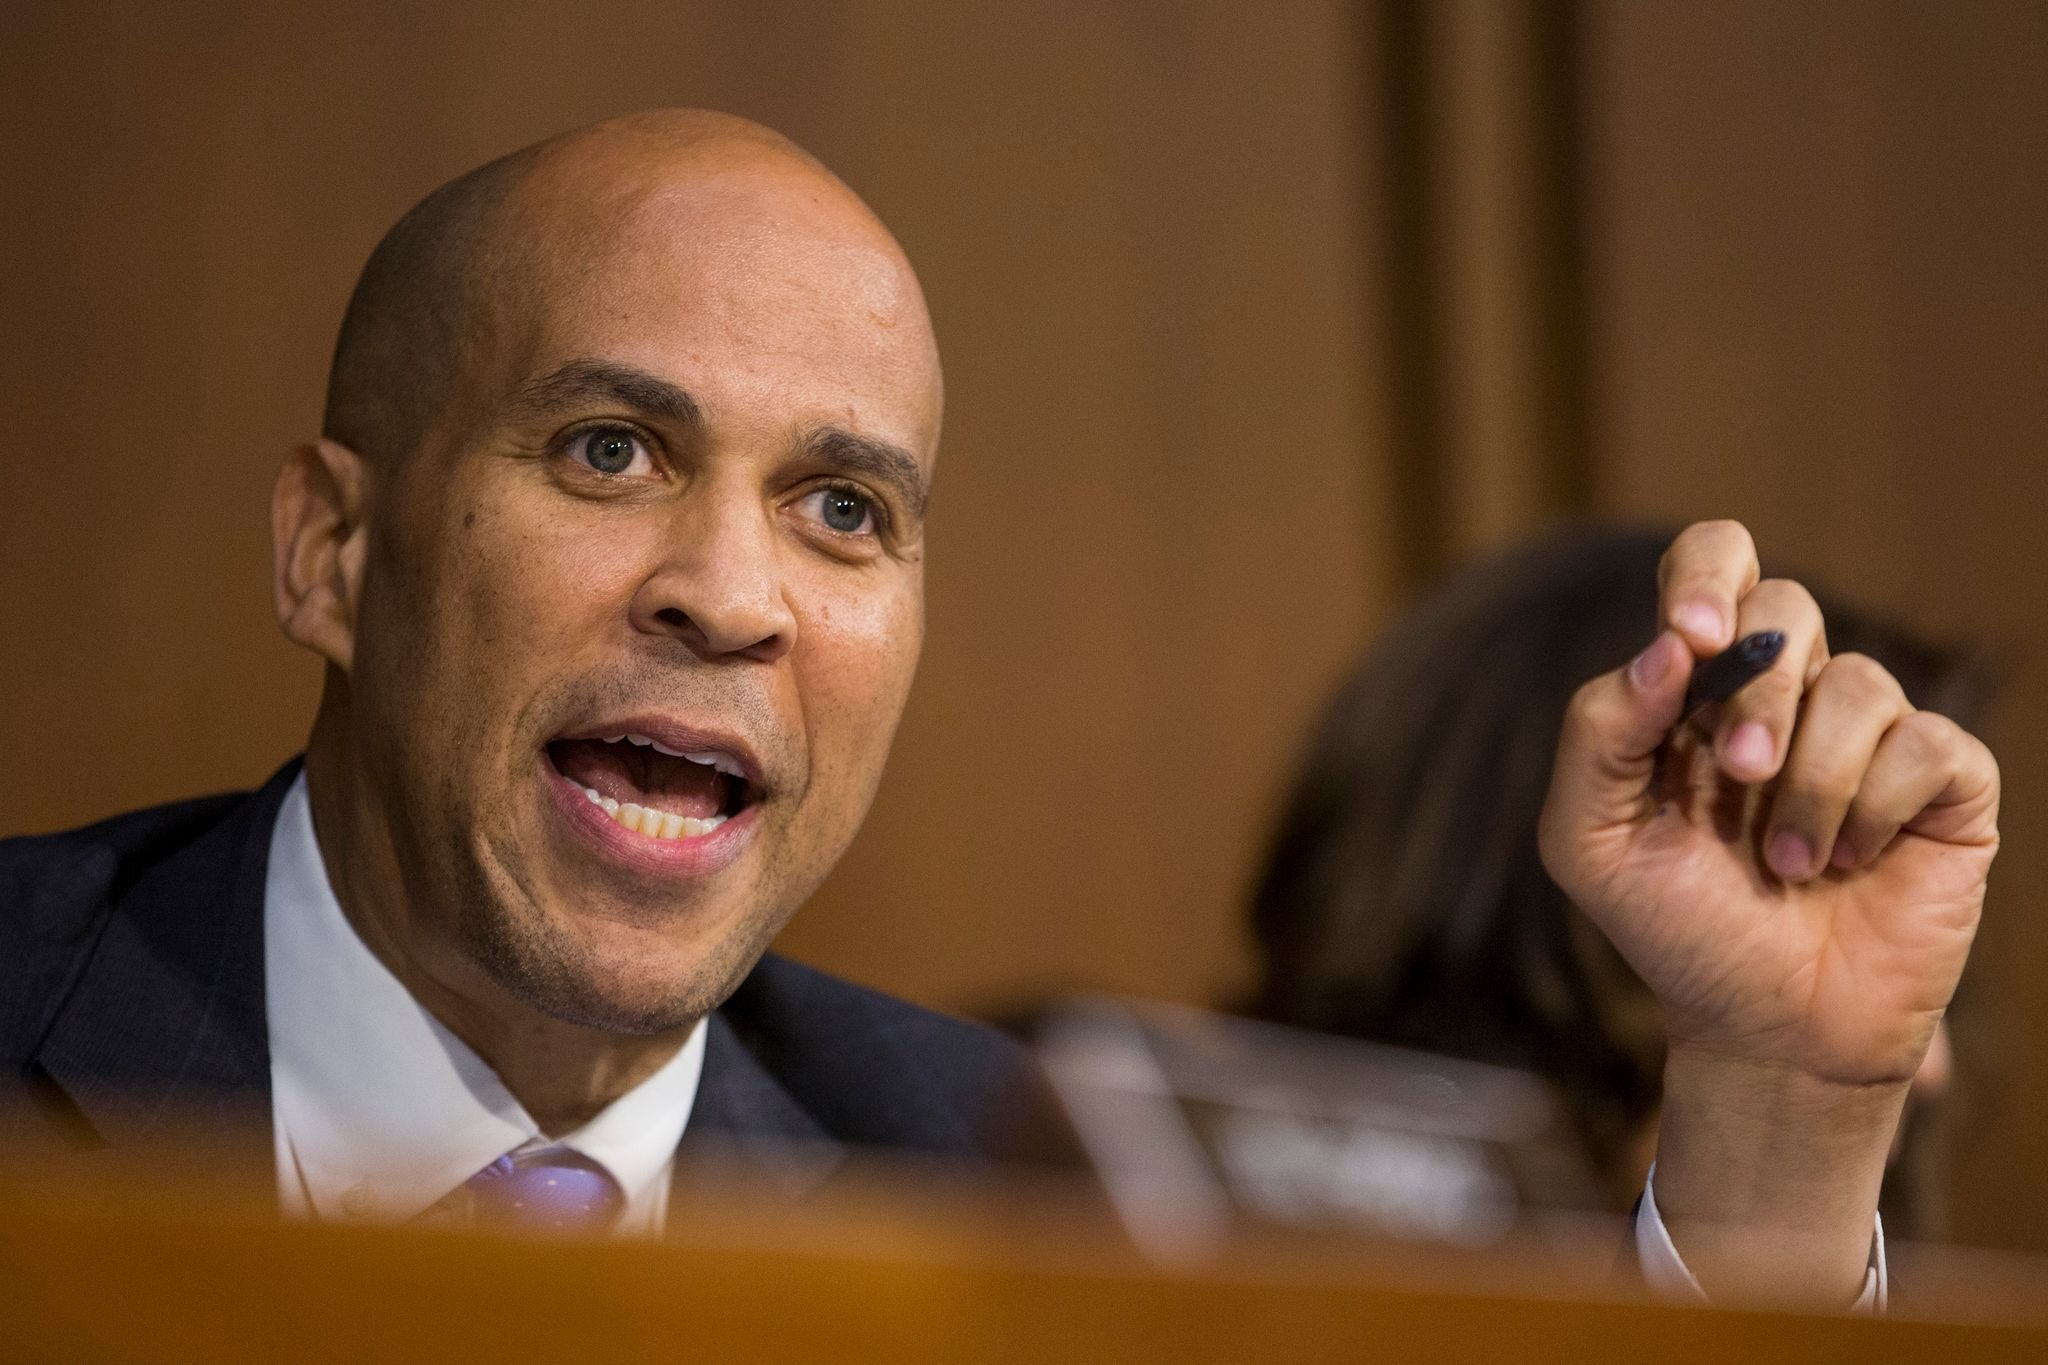 Senator Cory Booker speaking at a hearing on Capitol Hill in September 2018 in Washington D.C. | Source: Getty Images